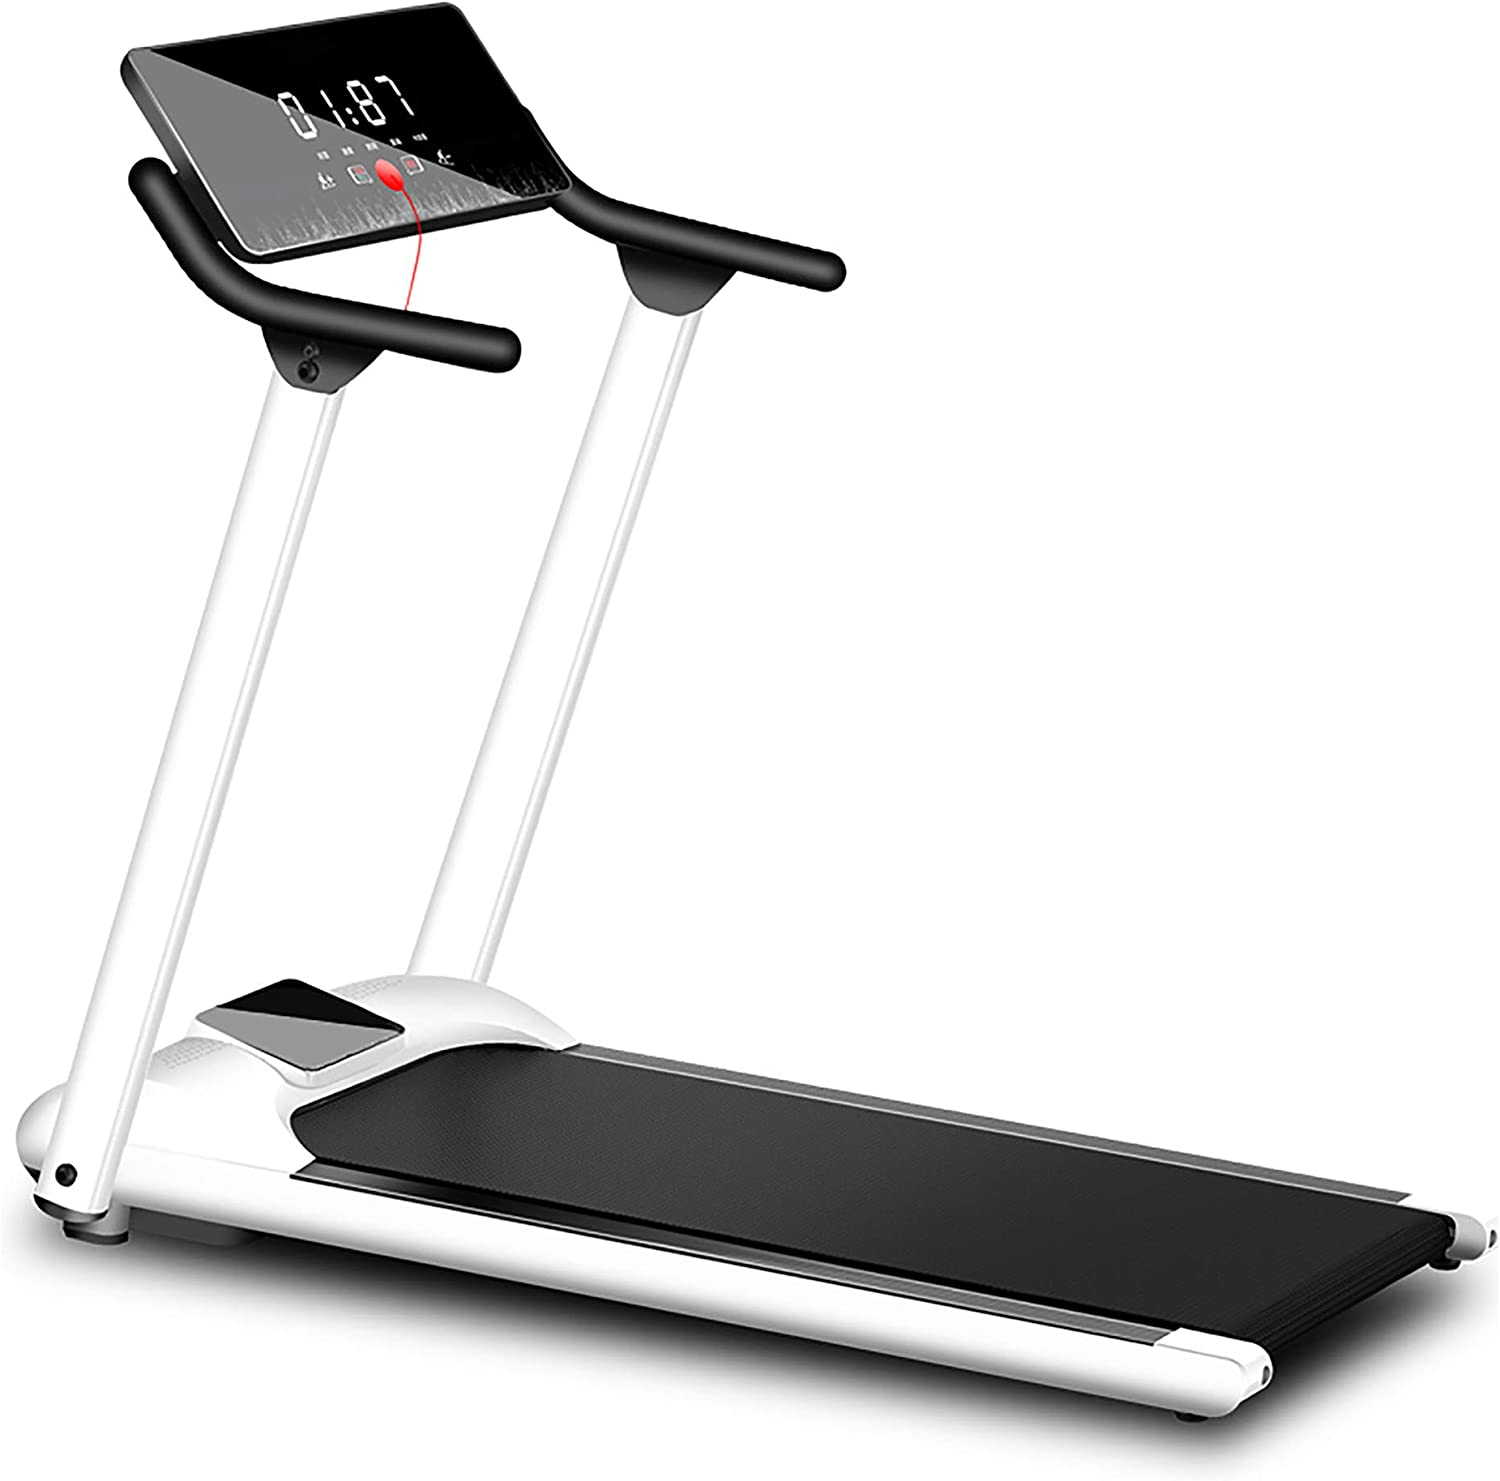 Folding Home Gym Exercise Equipment with Music Playing Haooyeah 3.5HP Treadmill for Home or Office Running Machine up to 10 km//h Speed